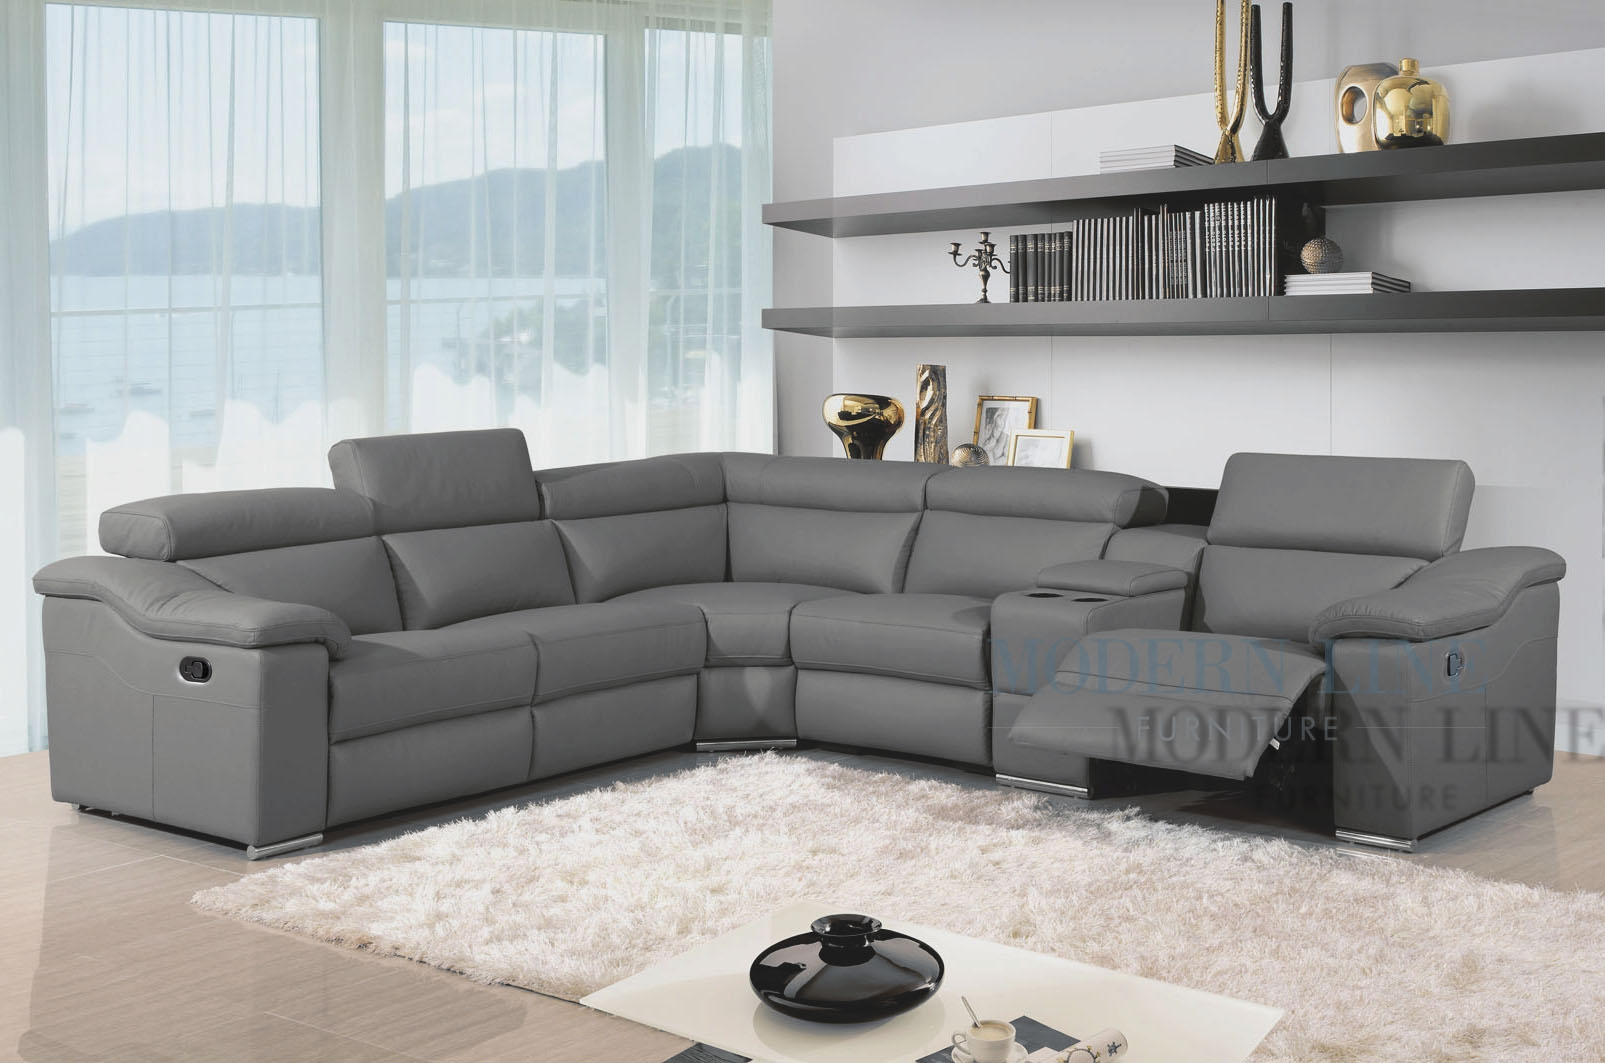 Decor Rooms To Go Cindy Crawford Cindy Crawford Rooms To Go Pertaining To Cindy Crawford Sofas (Image 10 of 15)